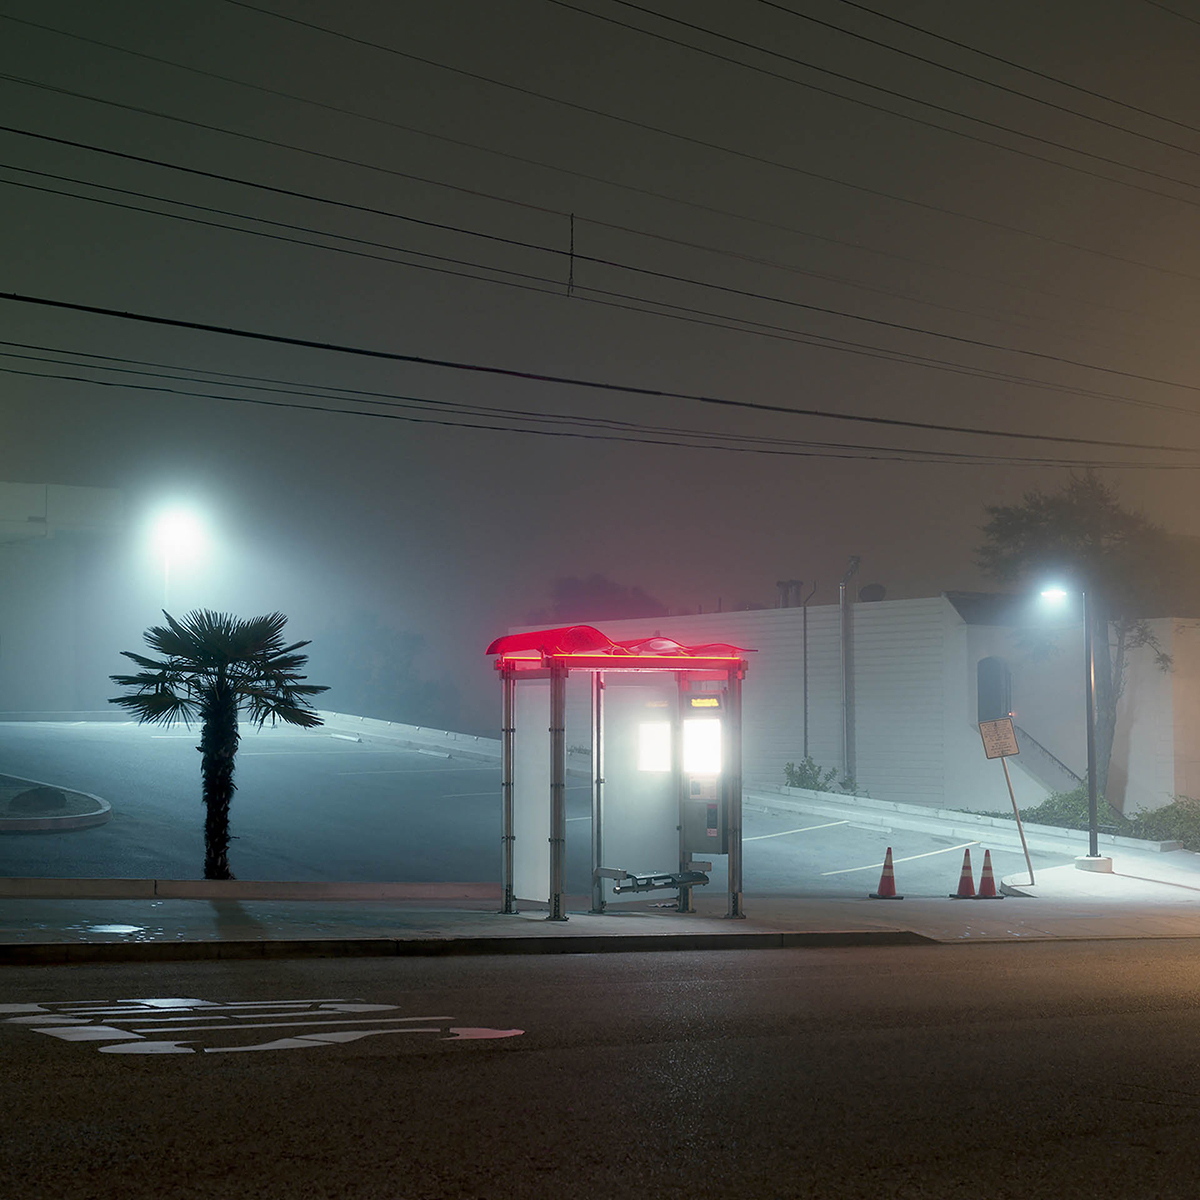 The Foggy Night